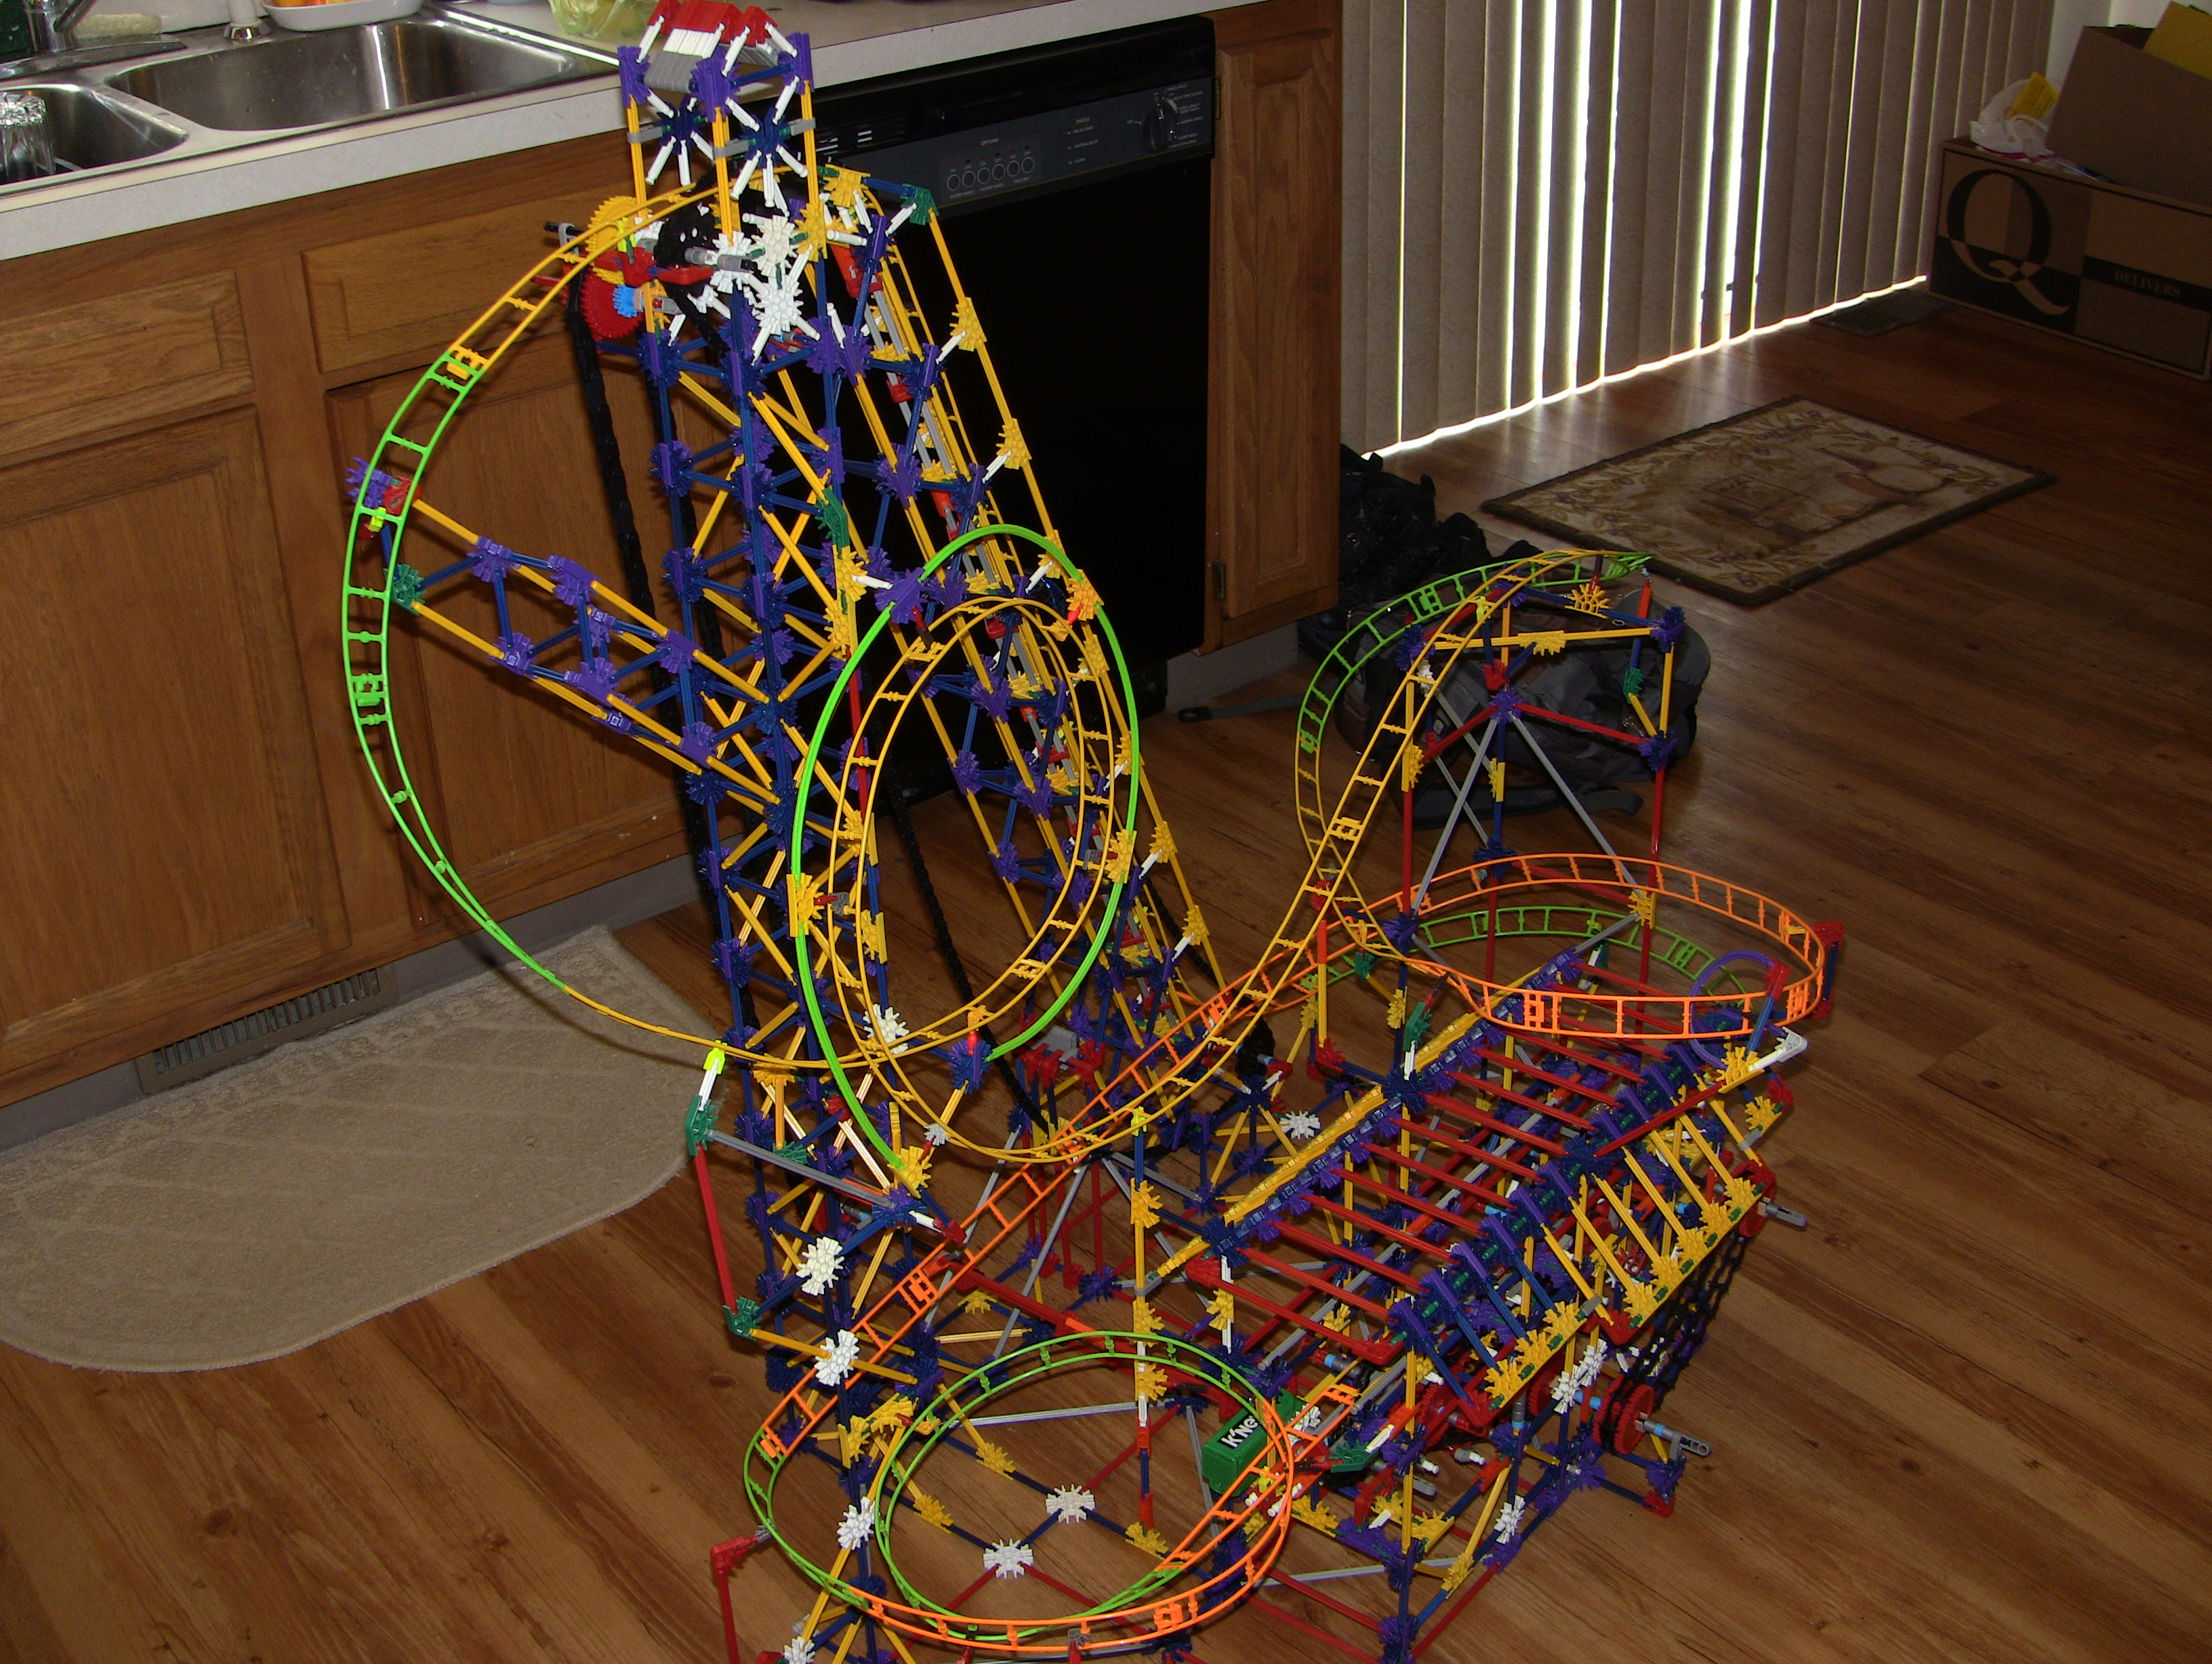 Knex Neon Lightning Coaster Instructions And Video( With New Motor-Less Tire-drive)